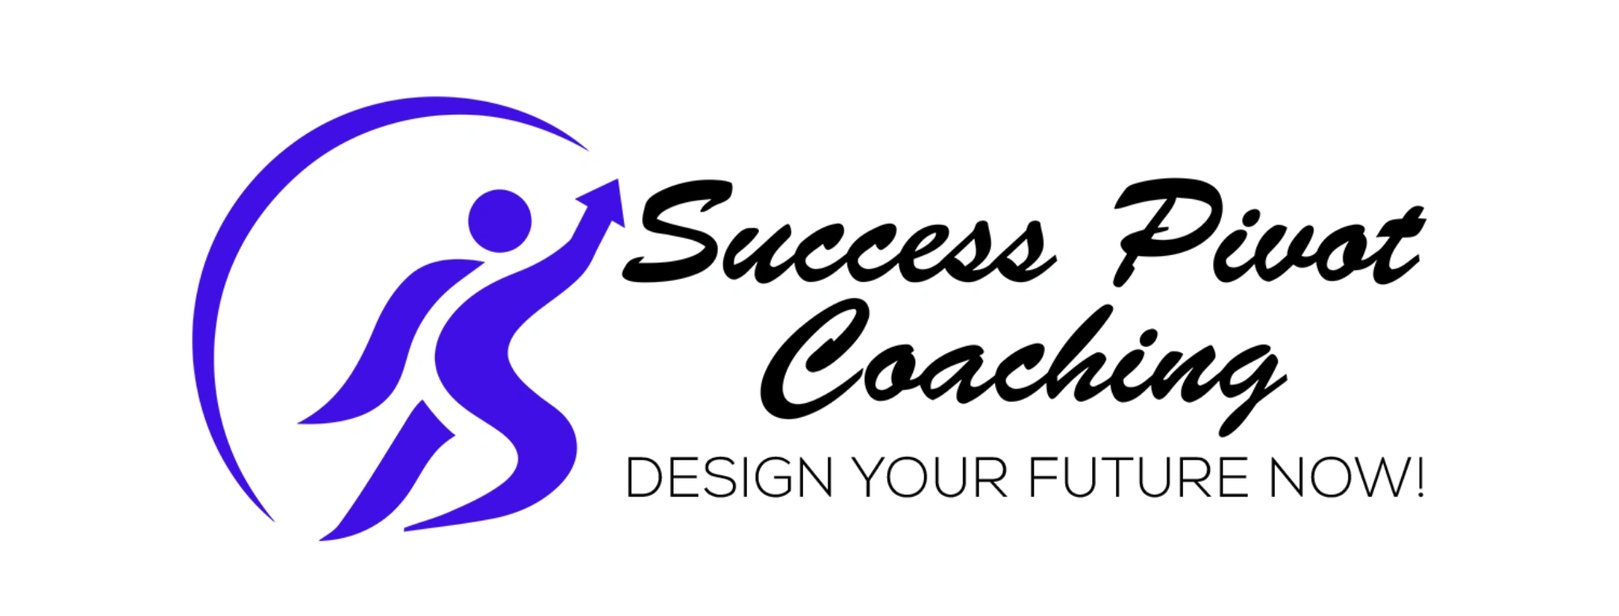 Success Pivot Coaching